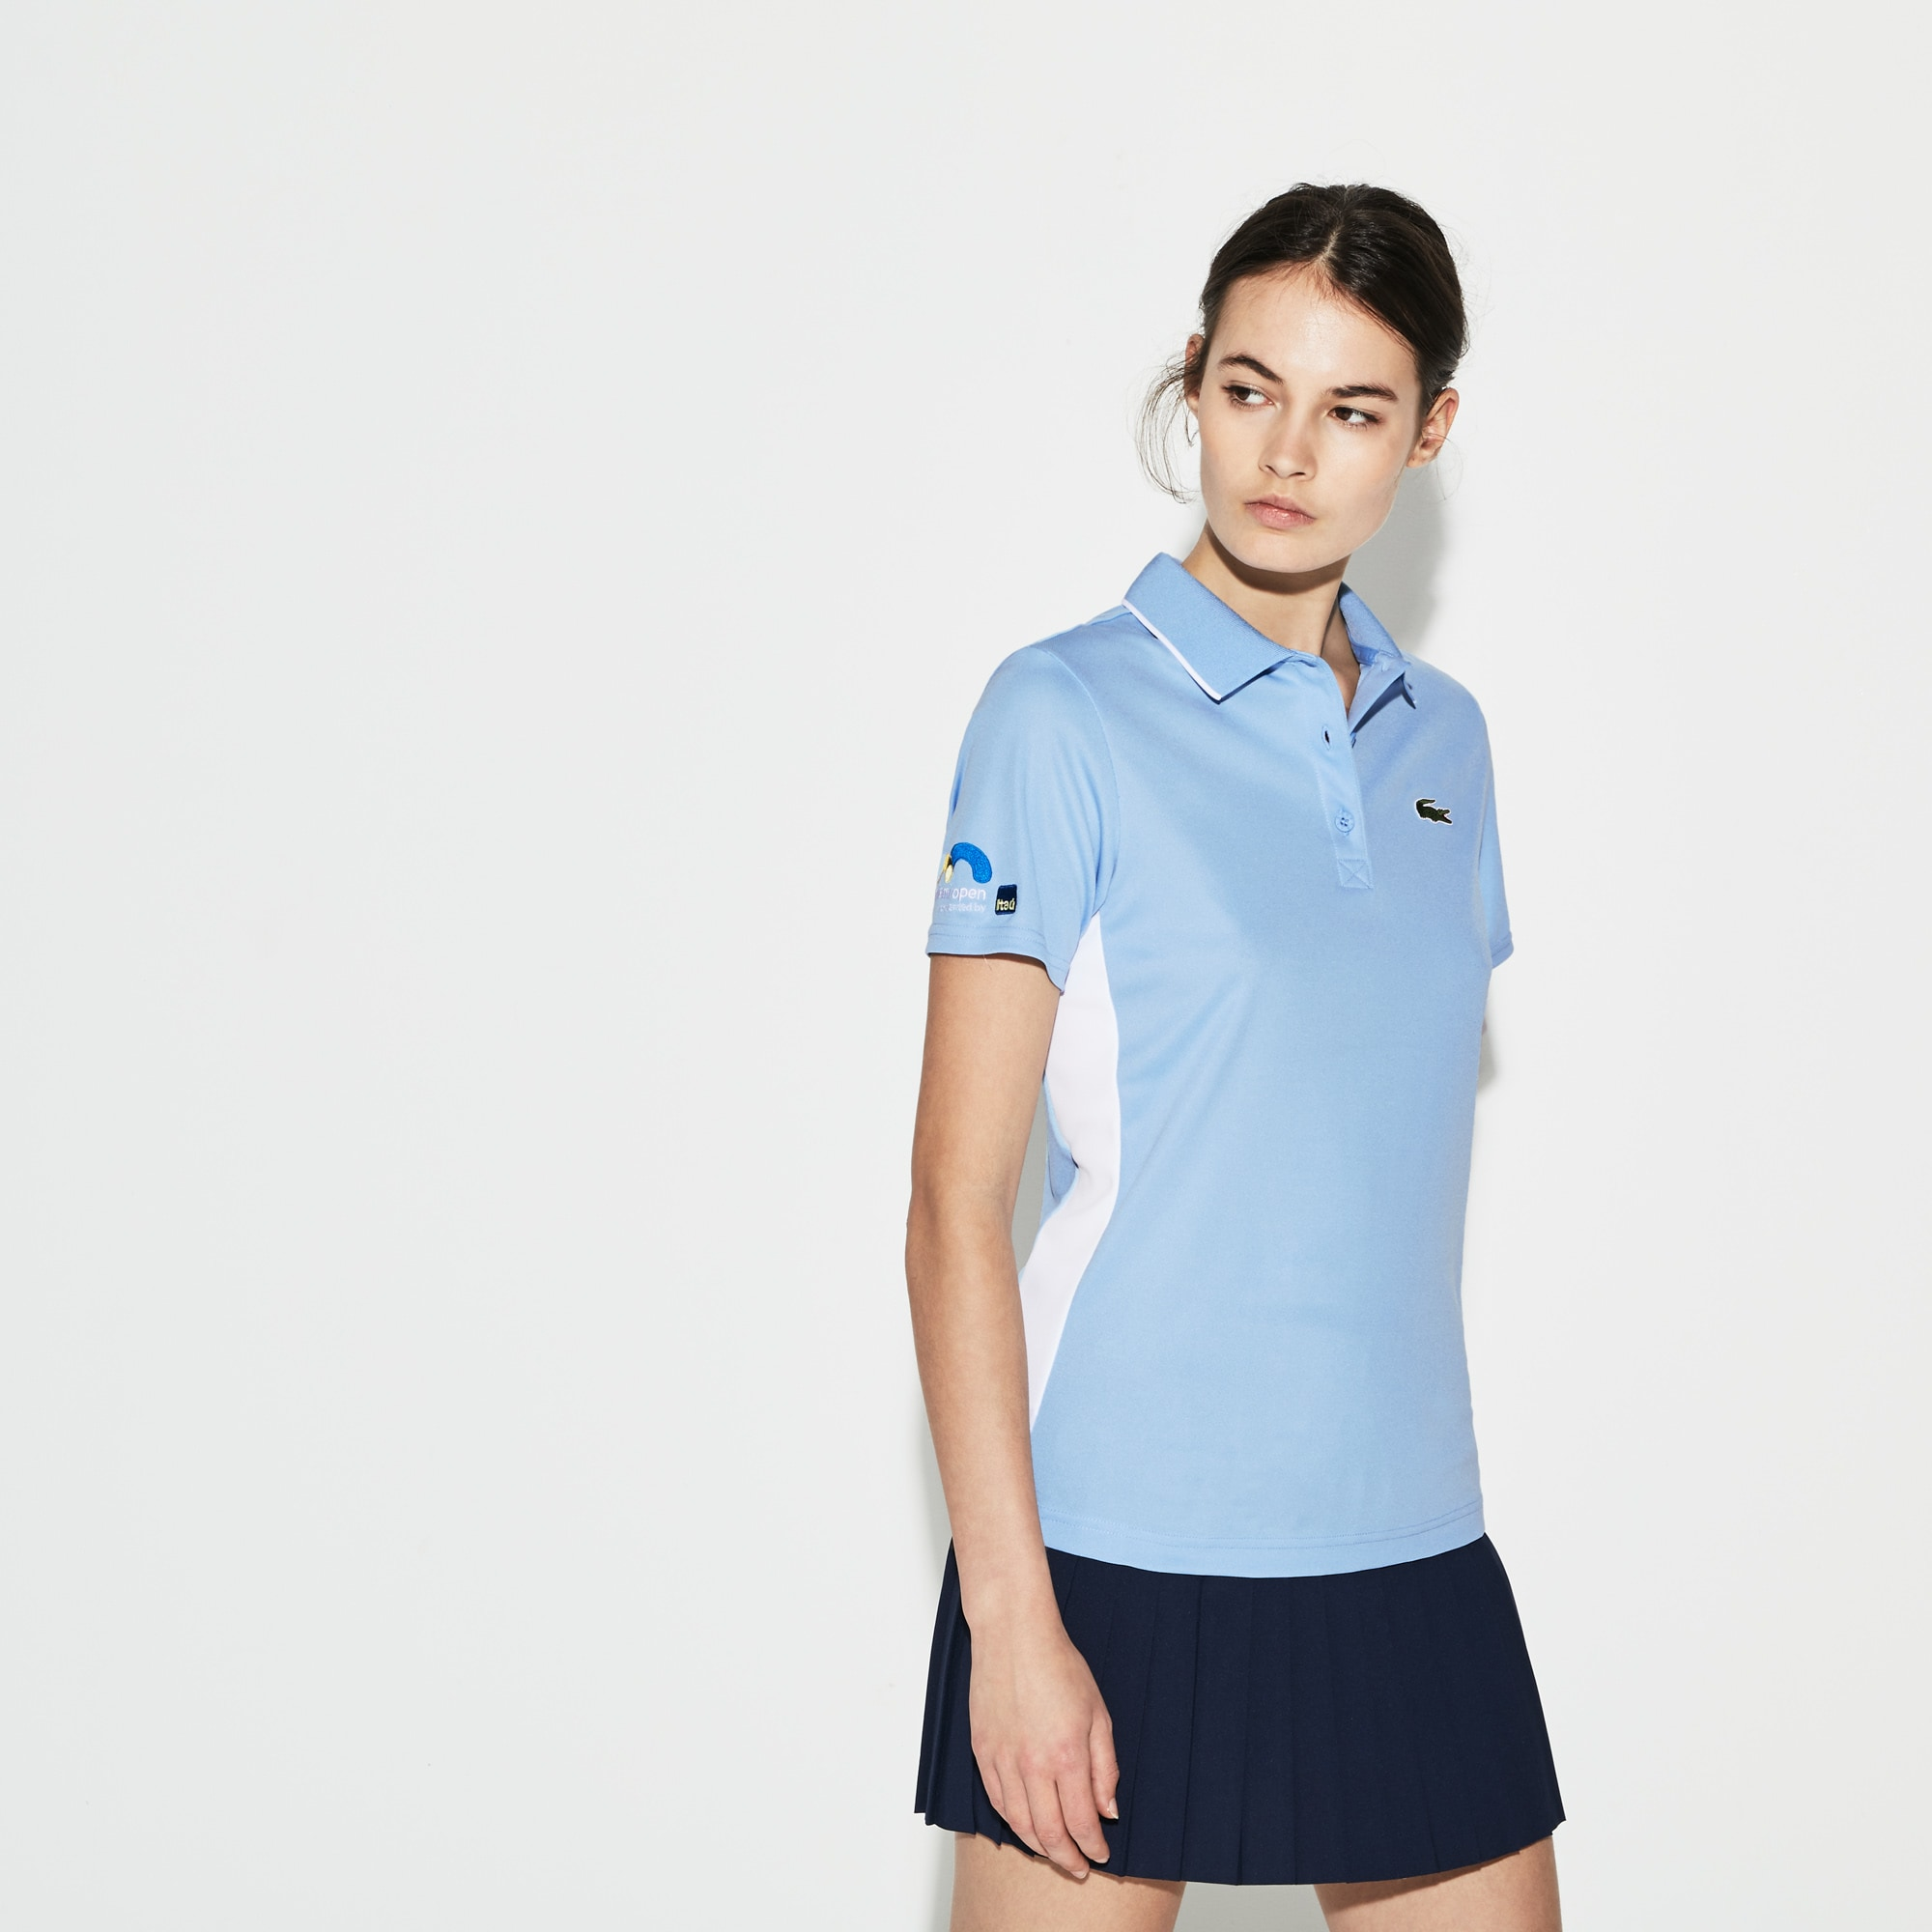 Women's SPORT Miami Open Oversized Croc Piqué Tennis Polo